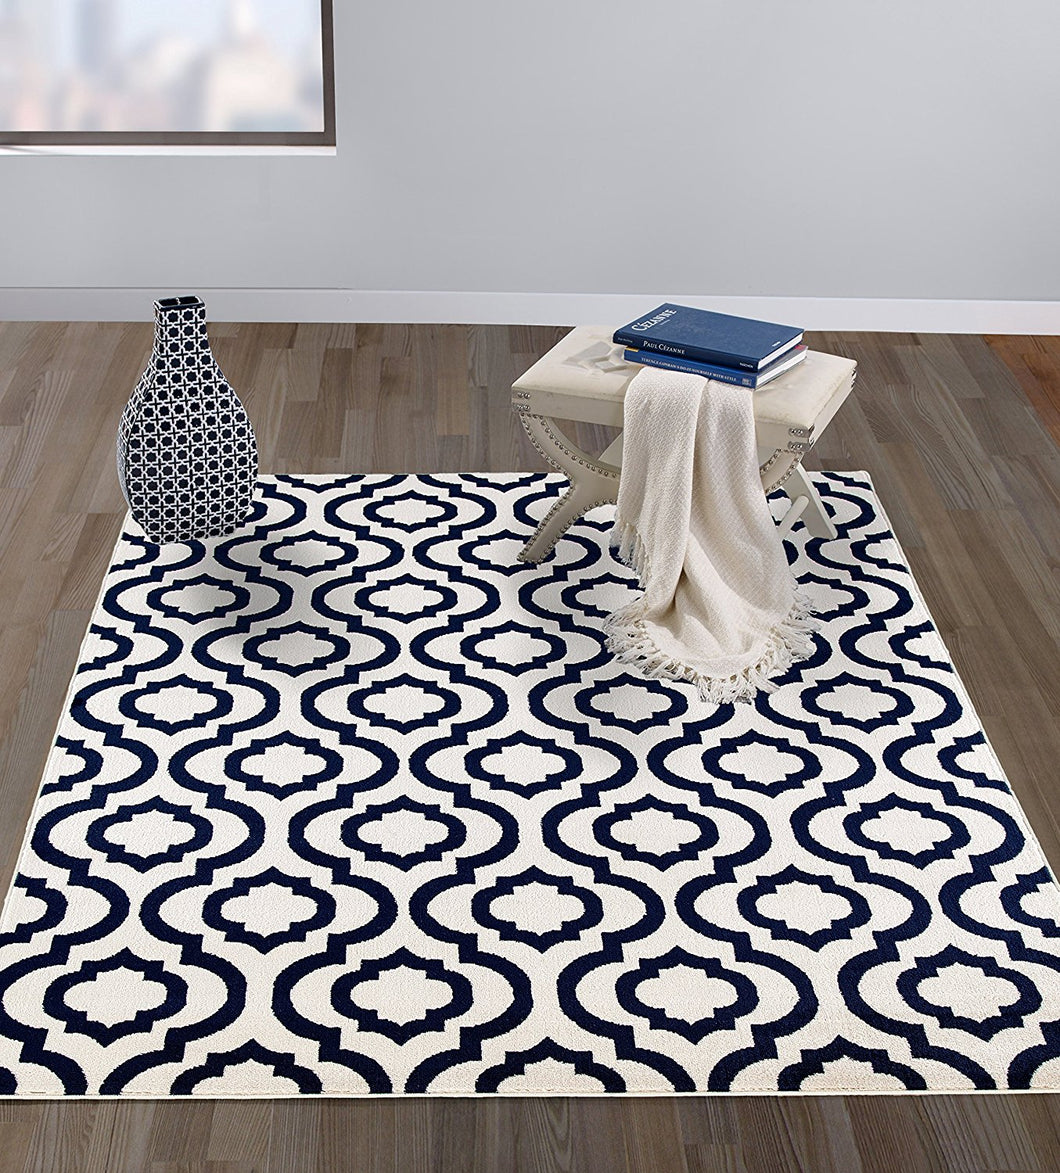 Trellis Design Ivory/Navy Area Rugs